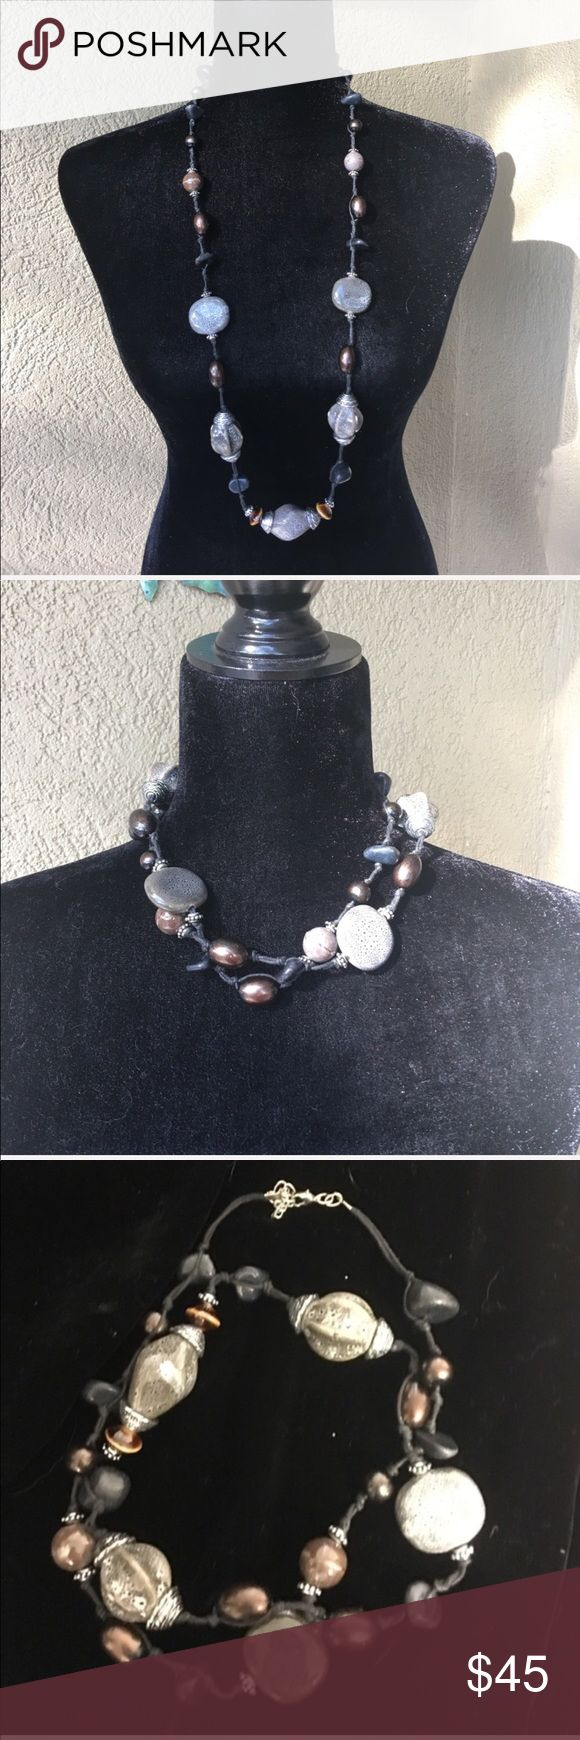 🆕 PD Grey & brown stone look necklace Premier Designs Grey & brown stone look necklace- can be worn multiple ways by wrapping it.   ✅I ship same or next day ✅Bundle for discount Premier Designs Jewelry Necklaces